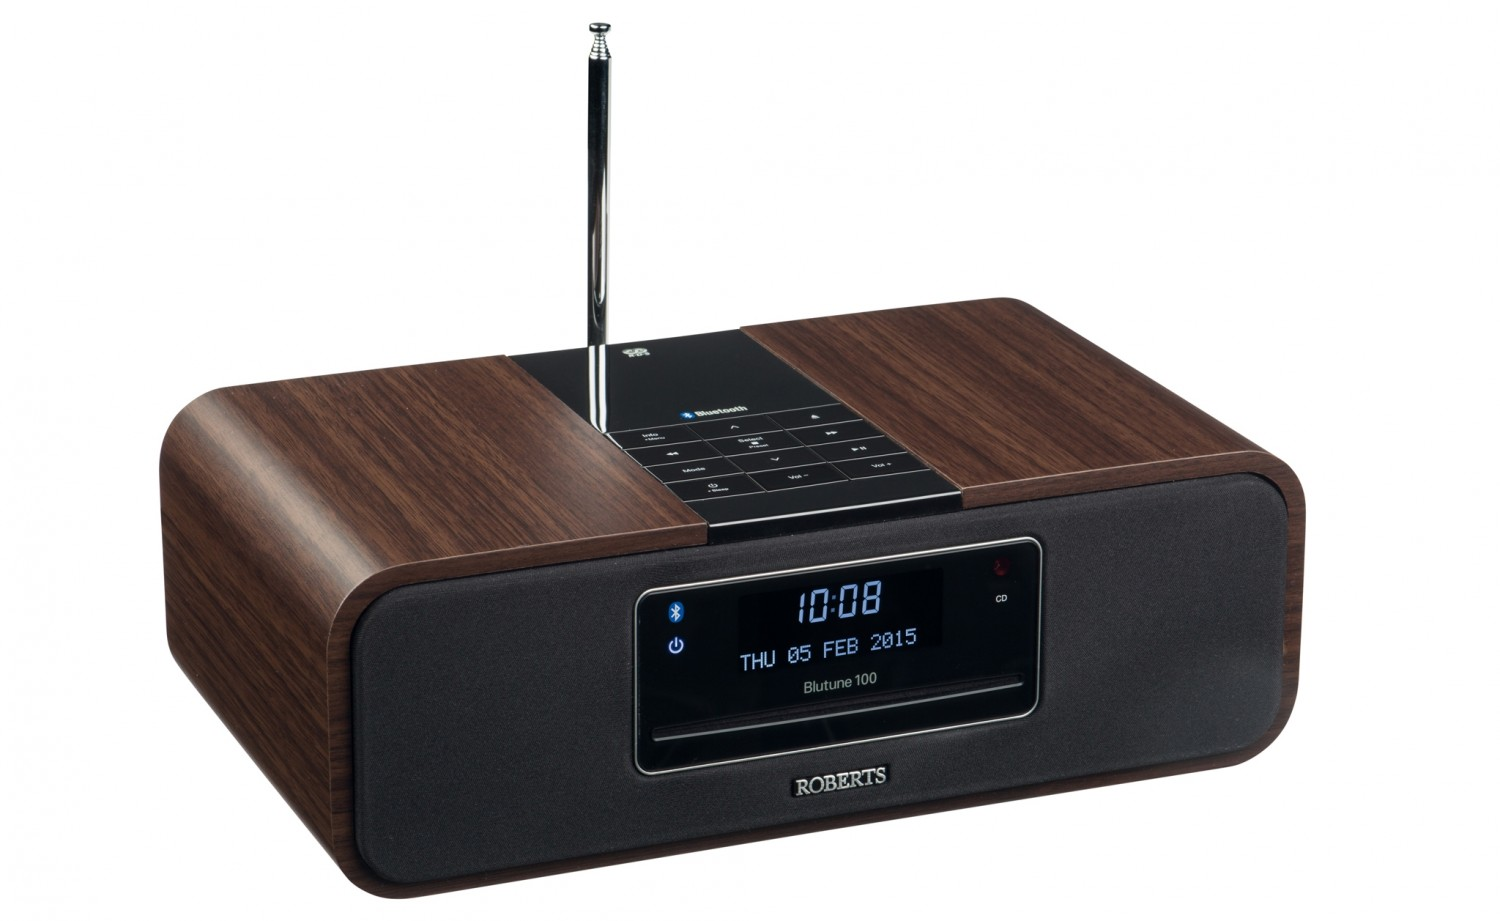 test dab radio roberts blutune 100 sehr gut. Black Bedroom Furniture Sets. Home Design Ideas